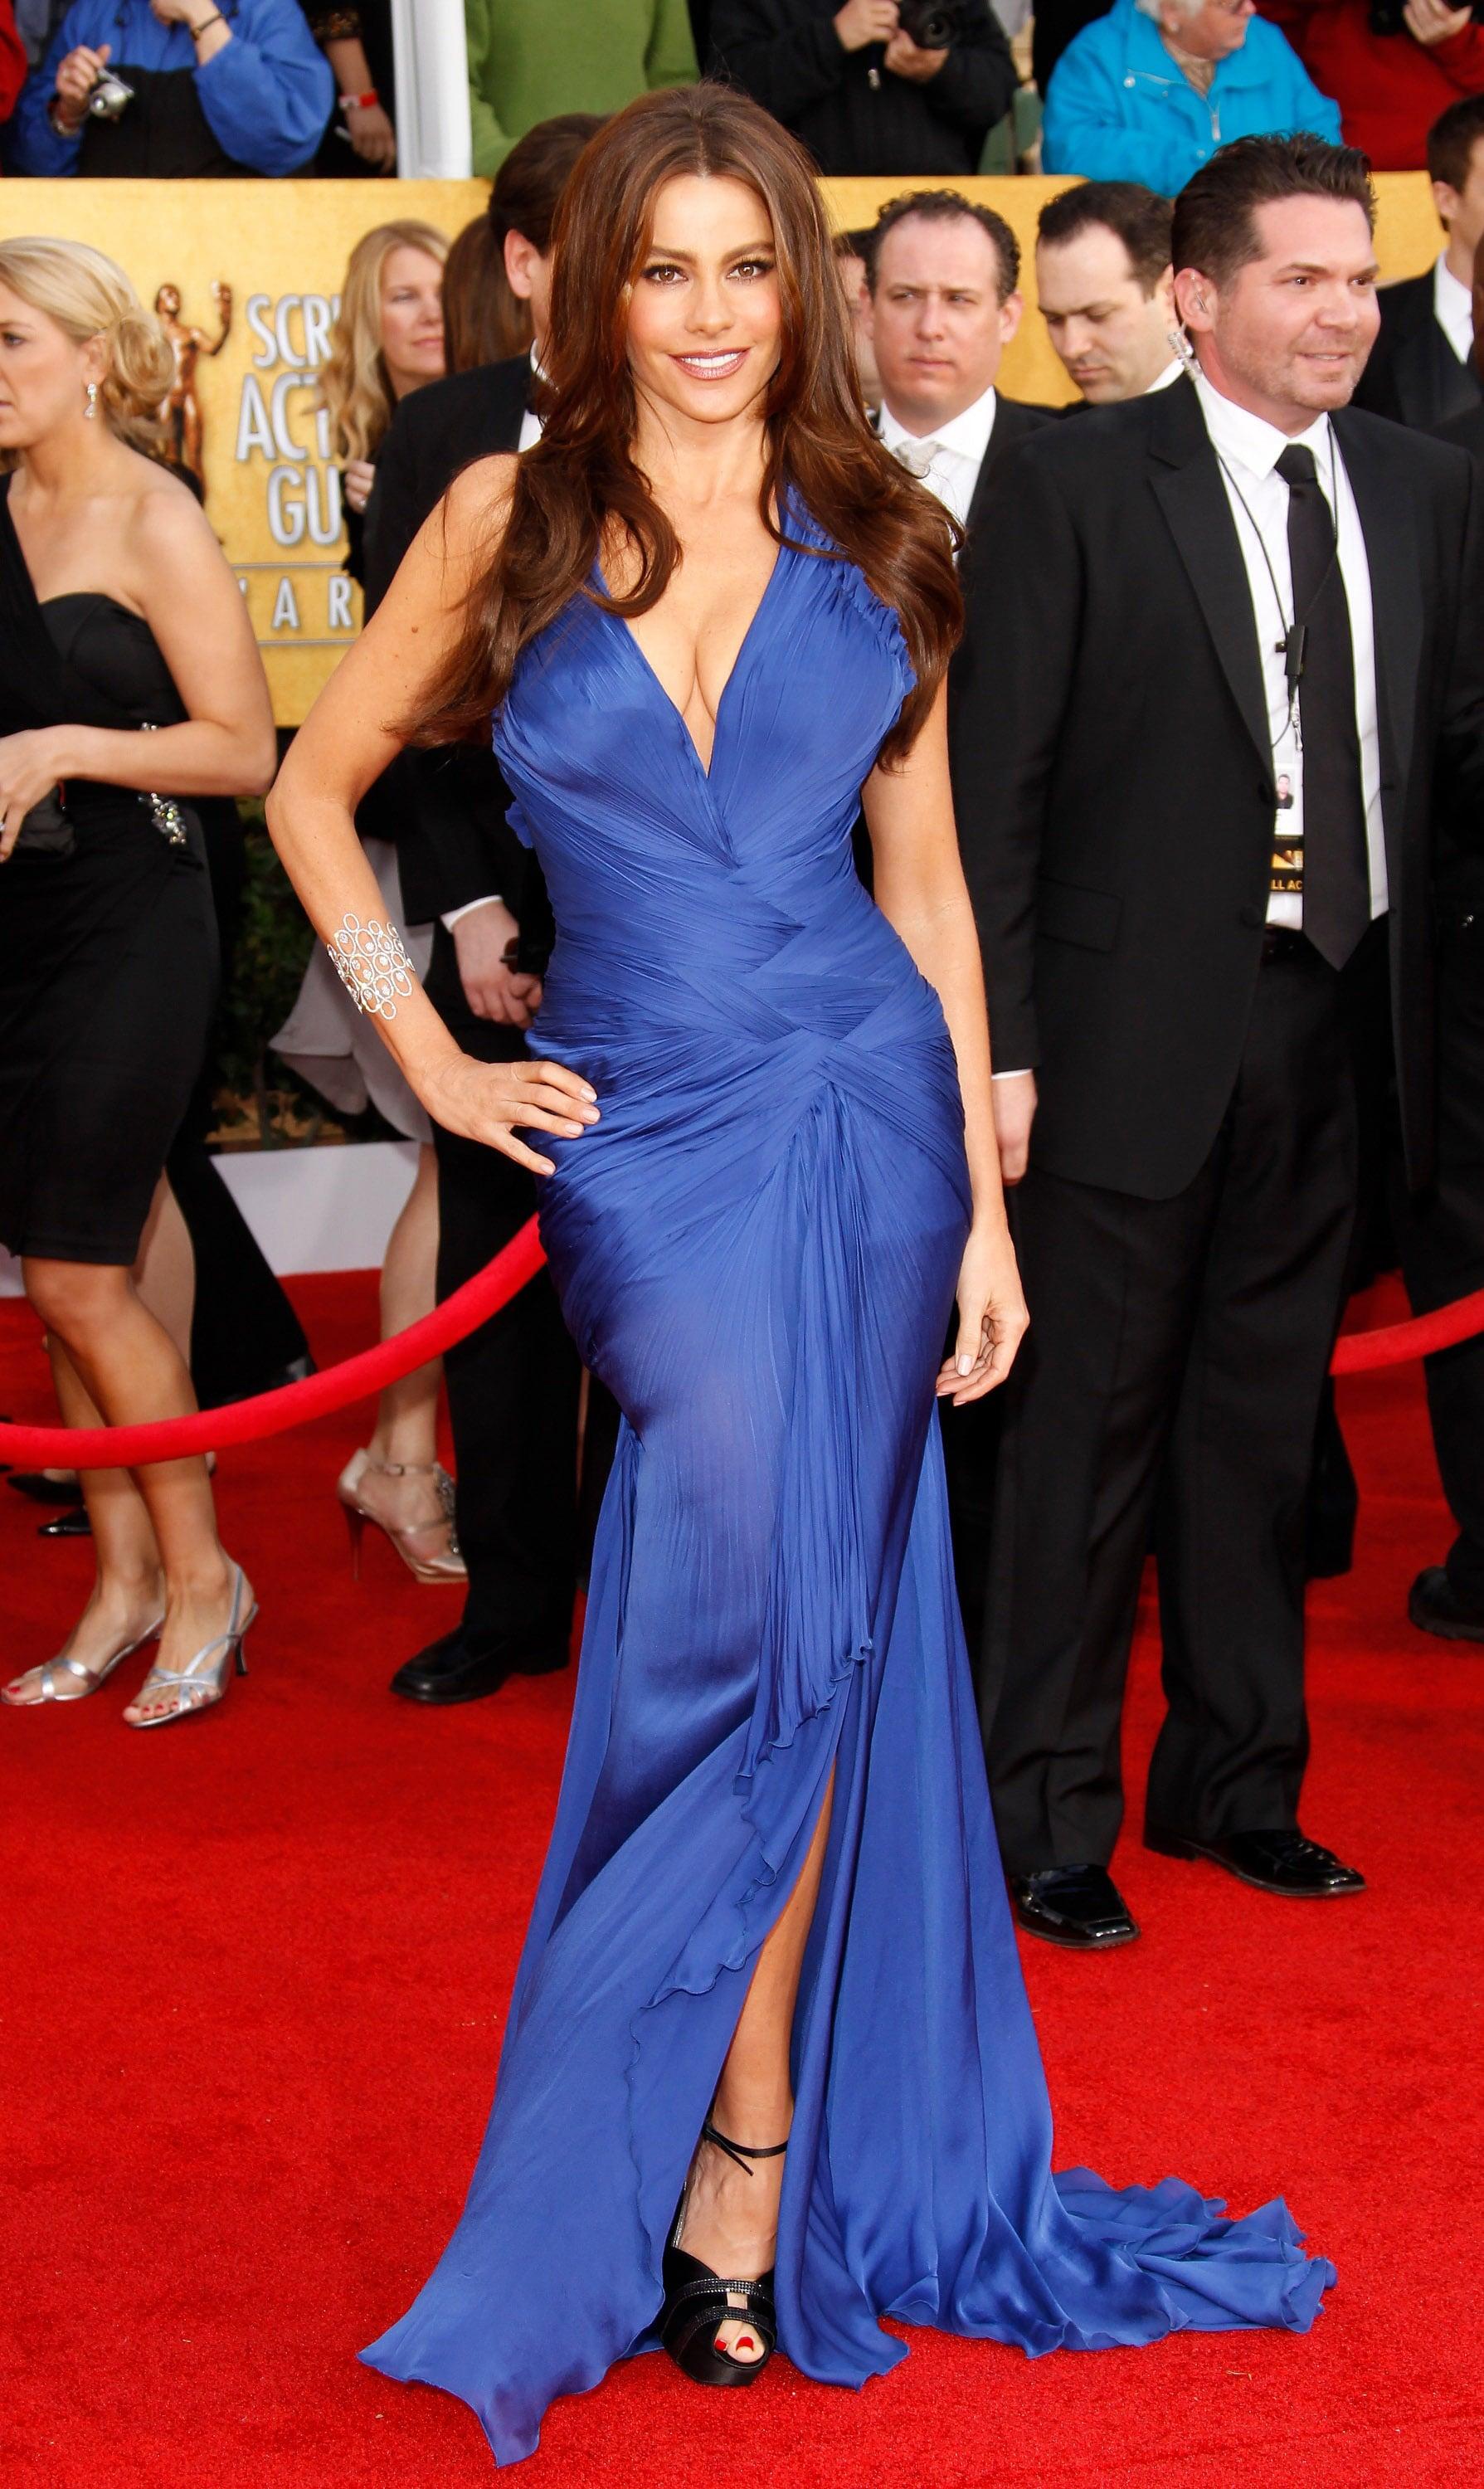 With a plunging neckline, enticing thigh-high slit, and brilliant cobalt hue, Sofia Vergara's body-hugging Roberto Cavalli gown stole the show at the 2011 SAG Awards. The star tempered her sultry number with a few dazzling accessories, au naturel makeup, and breezy waves.